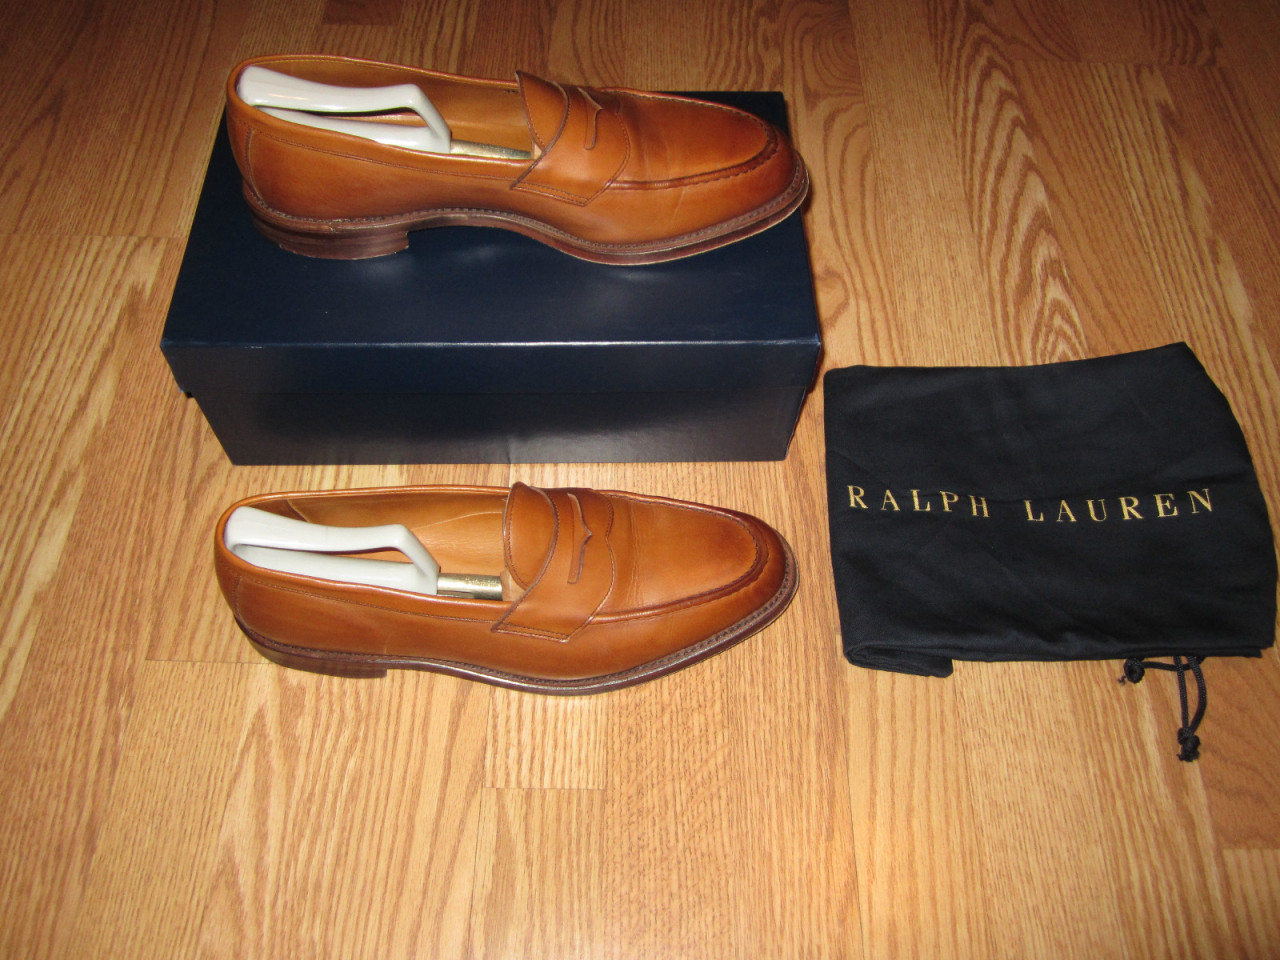 "putthison:  Searching for Ralph Lauren Shoes on eBay Ian from the blog From Squalor to Baller has been writing a pretty good series on how to build a basic business casual wardrobe. His latest entry on footwear reminded me of something: Ralph Lauren shoes on eBay are one of the best ways a man can buy decent-quality, classic shoes for not too much money.  To be sure, Ralph Lauren makes a lot of crap (sorry, Ralph). His company basically sells things at every price point on the spectrum, and the lower end stuff isn't terribly worth buying. But that's also maybe why Ralph Lauren shoes don't go for much money on eBay. Most people don't want to sift through the chaff. If you're willing to, however, you can find some great deals. For example, see the following auctions that just ended: Basic brown bluchers for $90 Suede chukkas for $125 Suede chukkas again for $100 Quarter brogues for $125 Pebble grained boots for $125 Suede semi brogues for $100 Penny loafers for $62 Burnished loafers for $113 If you look hard enough, and are patient, you can score some decent shoes for $125 and under. The problem is obviously trying to figure out what's worth buying. Unfortunately, it can be difficult to discern the true quality of things from just a photo on eBay (sometimes a bad photo at that). There are some things you can do, however.  First, use a more refined search link. Ralph Lauren generally makes terrible sneakers and tennis shoes, so you can exclude those from your search by keying in ""-tennis, -sneakers, -sneaker"" to your query (minus the quotation marks). These will take out the words ""tennis,"" ""sneakers,"" and ""sneaker"" from your search. You probably also want to take out anything from the Chaps line, and exclude RLX shoes (as those won't be in the classic styles you're presumably interested in). So add ""-Chaps, -RLX"" to the end as well. Here is a link to the search with all these conditions, which you can use to find shoes in your size. Feel free to amend the query with even more parameters as you see fit.  Second, while I hate to encourage people to think about a garment's quality in terms of its country of origin (which is often not a very reliable way to determine quality, by the way), it's generally true in this case that RL's shoes made in England and Italy will be of higher quality than those made in Asian countries. So, if you can, look for a photo that shows a label declaring where the shoes have been produced. If you don't see one, ask the seller. Or, better yet, you can do an advanced search and add ""(England, Italy)"" to your query (again, without the quotation marks). Then tick the box for ""Search Titles and Descriptions."" This will pull up any auctions that have the words England or Italy in them. (Note, this will also pull up any auctions that have used the words Ralph Lauren, but are not actual Ralph Lauren shoes, so be careful).  Third, while it's not always true that more expensive things will be better made than less expensive things, it's generally true here. If you see a manufacturer suggested retail price (MSRP) of $350+ or so, it's not a bad bet that the shoes have been decently made.  Fourth, avoid shoes with overt branding. That is, shoes with pony logos, the word ""Polo,"" or the name ""Ralph Lauren."" It's fine if these are on the bottom of the sole or the inside of the shoes, but anything on the uppers is generally a mark that it comes from a lower-quality line. Finally, as a general rule, try to go for shoes with hard bottom leather soles. Shoes with rubber soles or even half rubber soles (like this) are more likely to be of poor quality. There are exceptions, of course. Suede bucks and boat shoes will almost always come with rubber soles, so this won't be an indicator of anything. Use smart judgement.  Again, there are a lot of ugly and poorly made Ralph Lauren shoes on eBay, but with some smart searching and a lot of patience, you can find decent shoes on eBay for less than what you'd pay for if you were hunting for Crockett & Jones or Allen Edmonds. Many of those companies are the ones producing for Ralph Lauren anyway; you're just getting a different logo on the inside of the shoes."